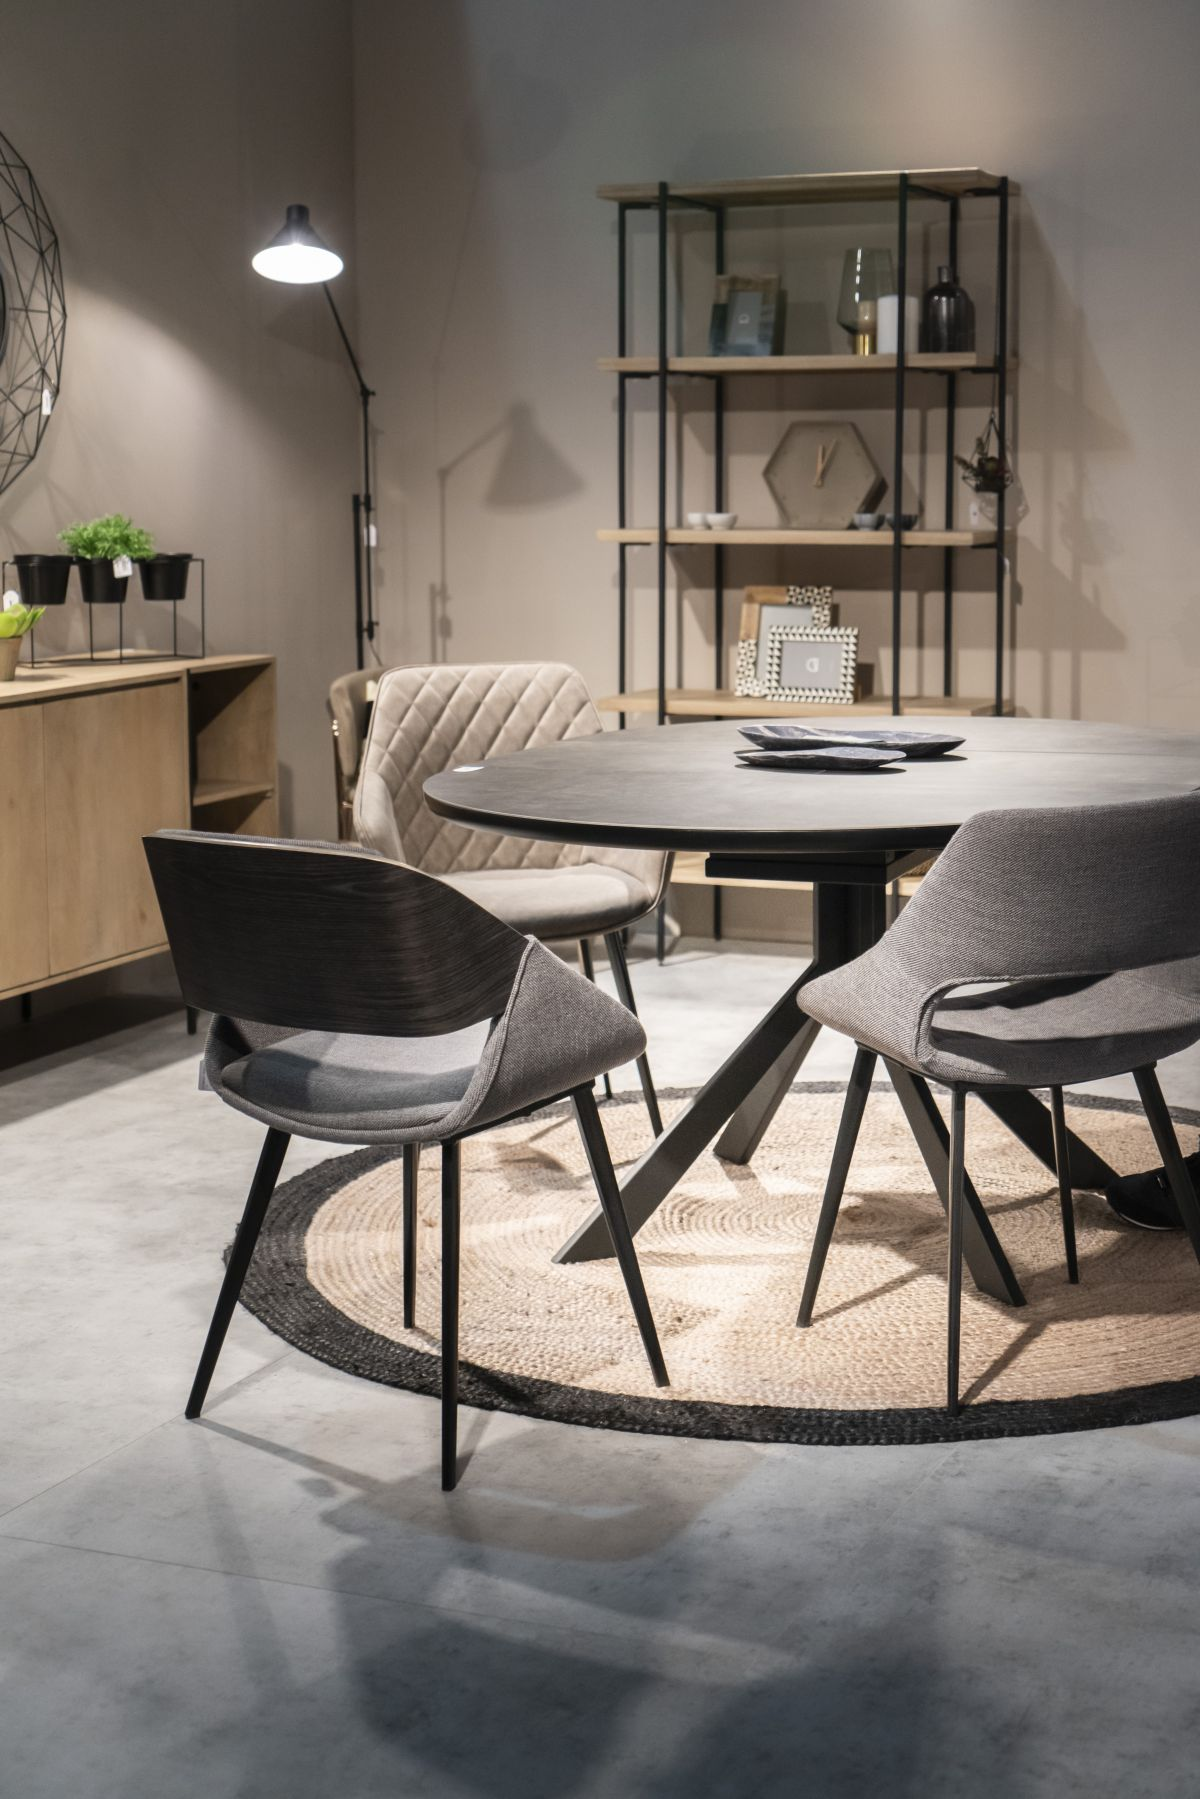 round table dining design - How To Design And Decorate The Space Around Your Dining Table